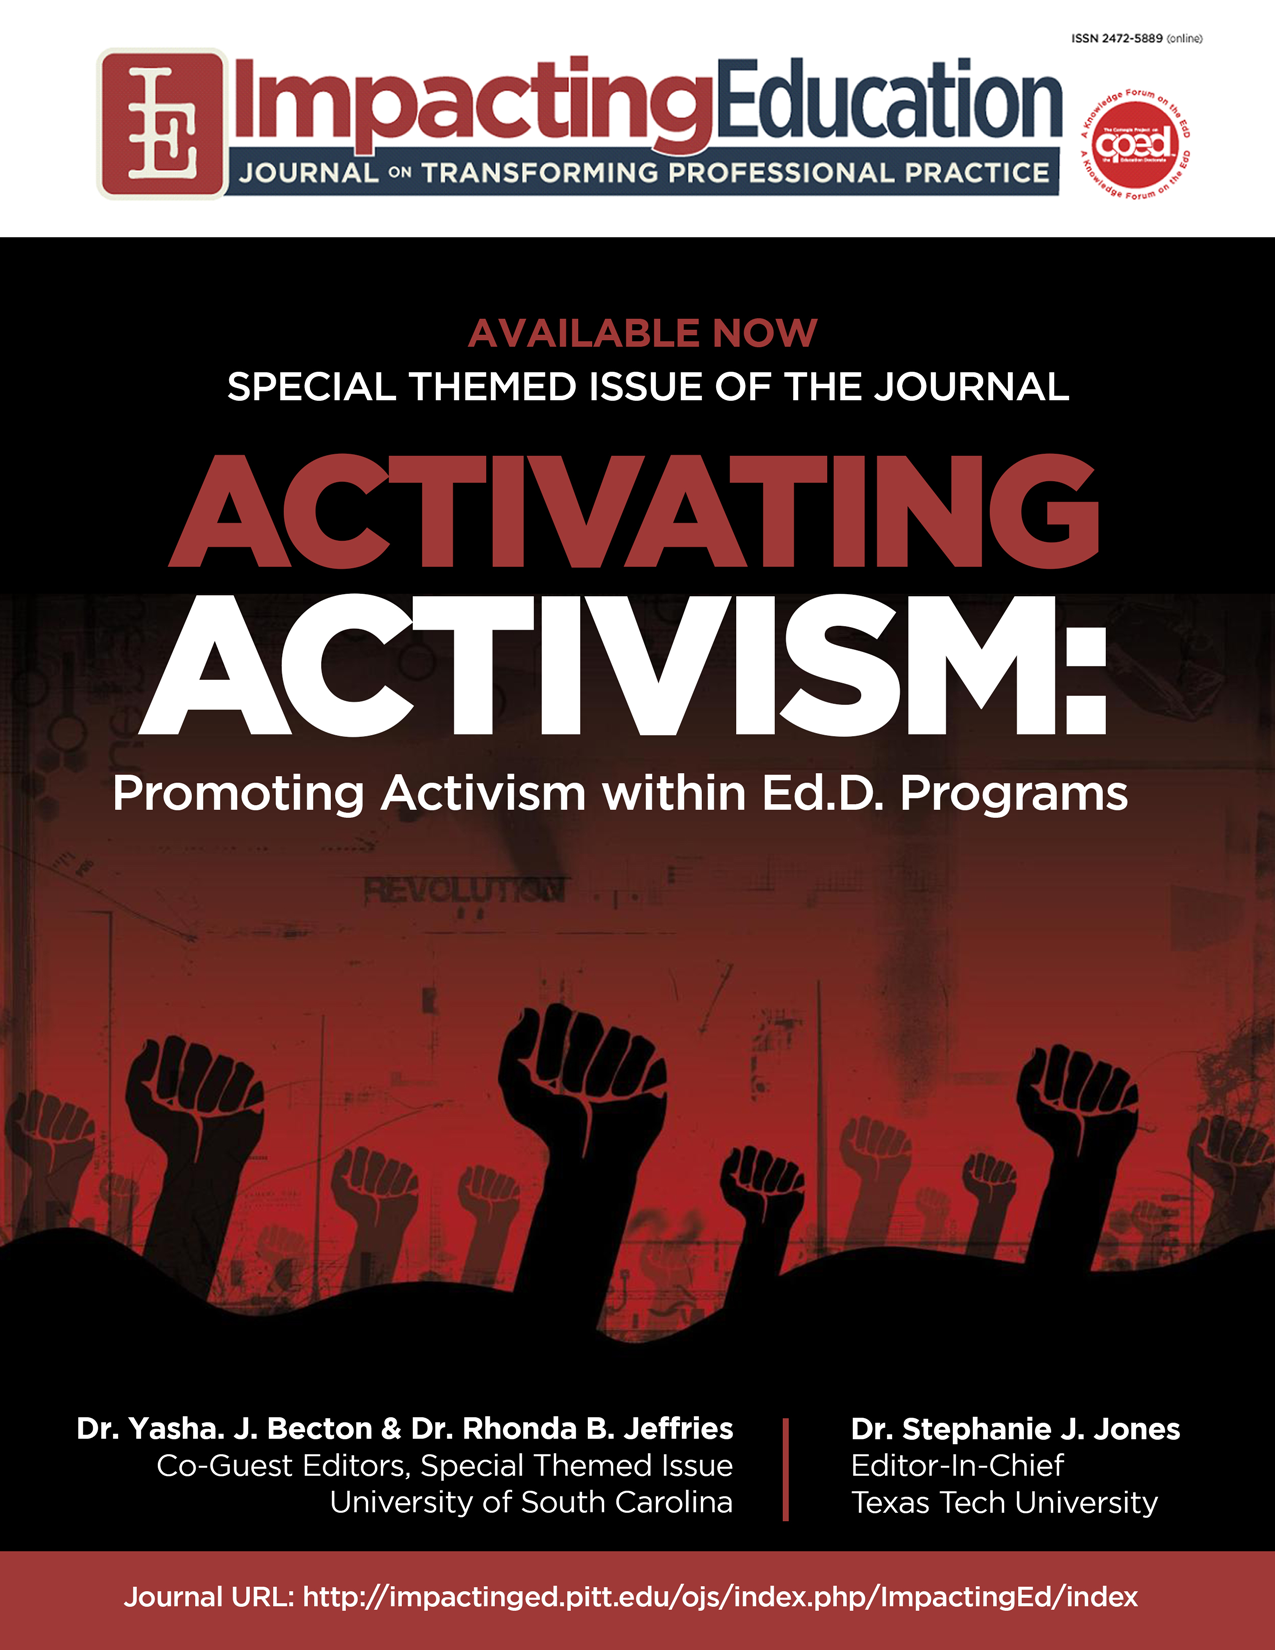 Impacting Education: Activating Activism: Promoting Activism within EdD Programs